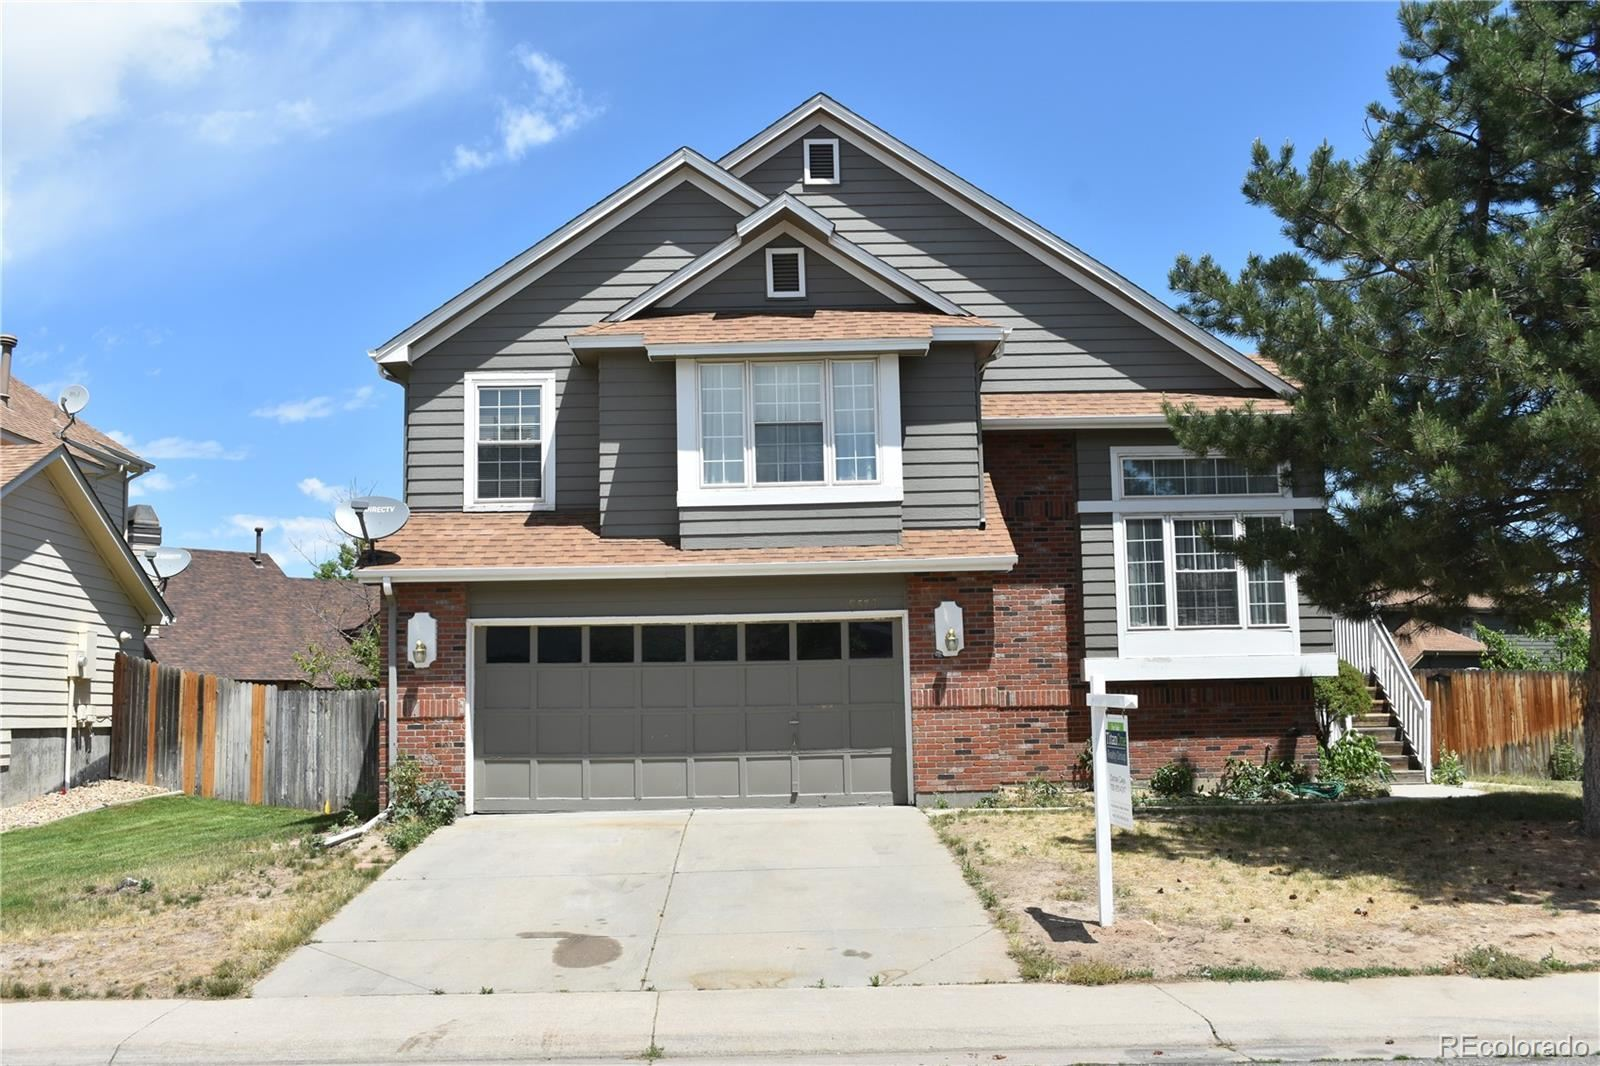 19573 E 42nd Avenue, Denver, CO 80249 - #: 6821904